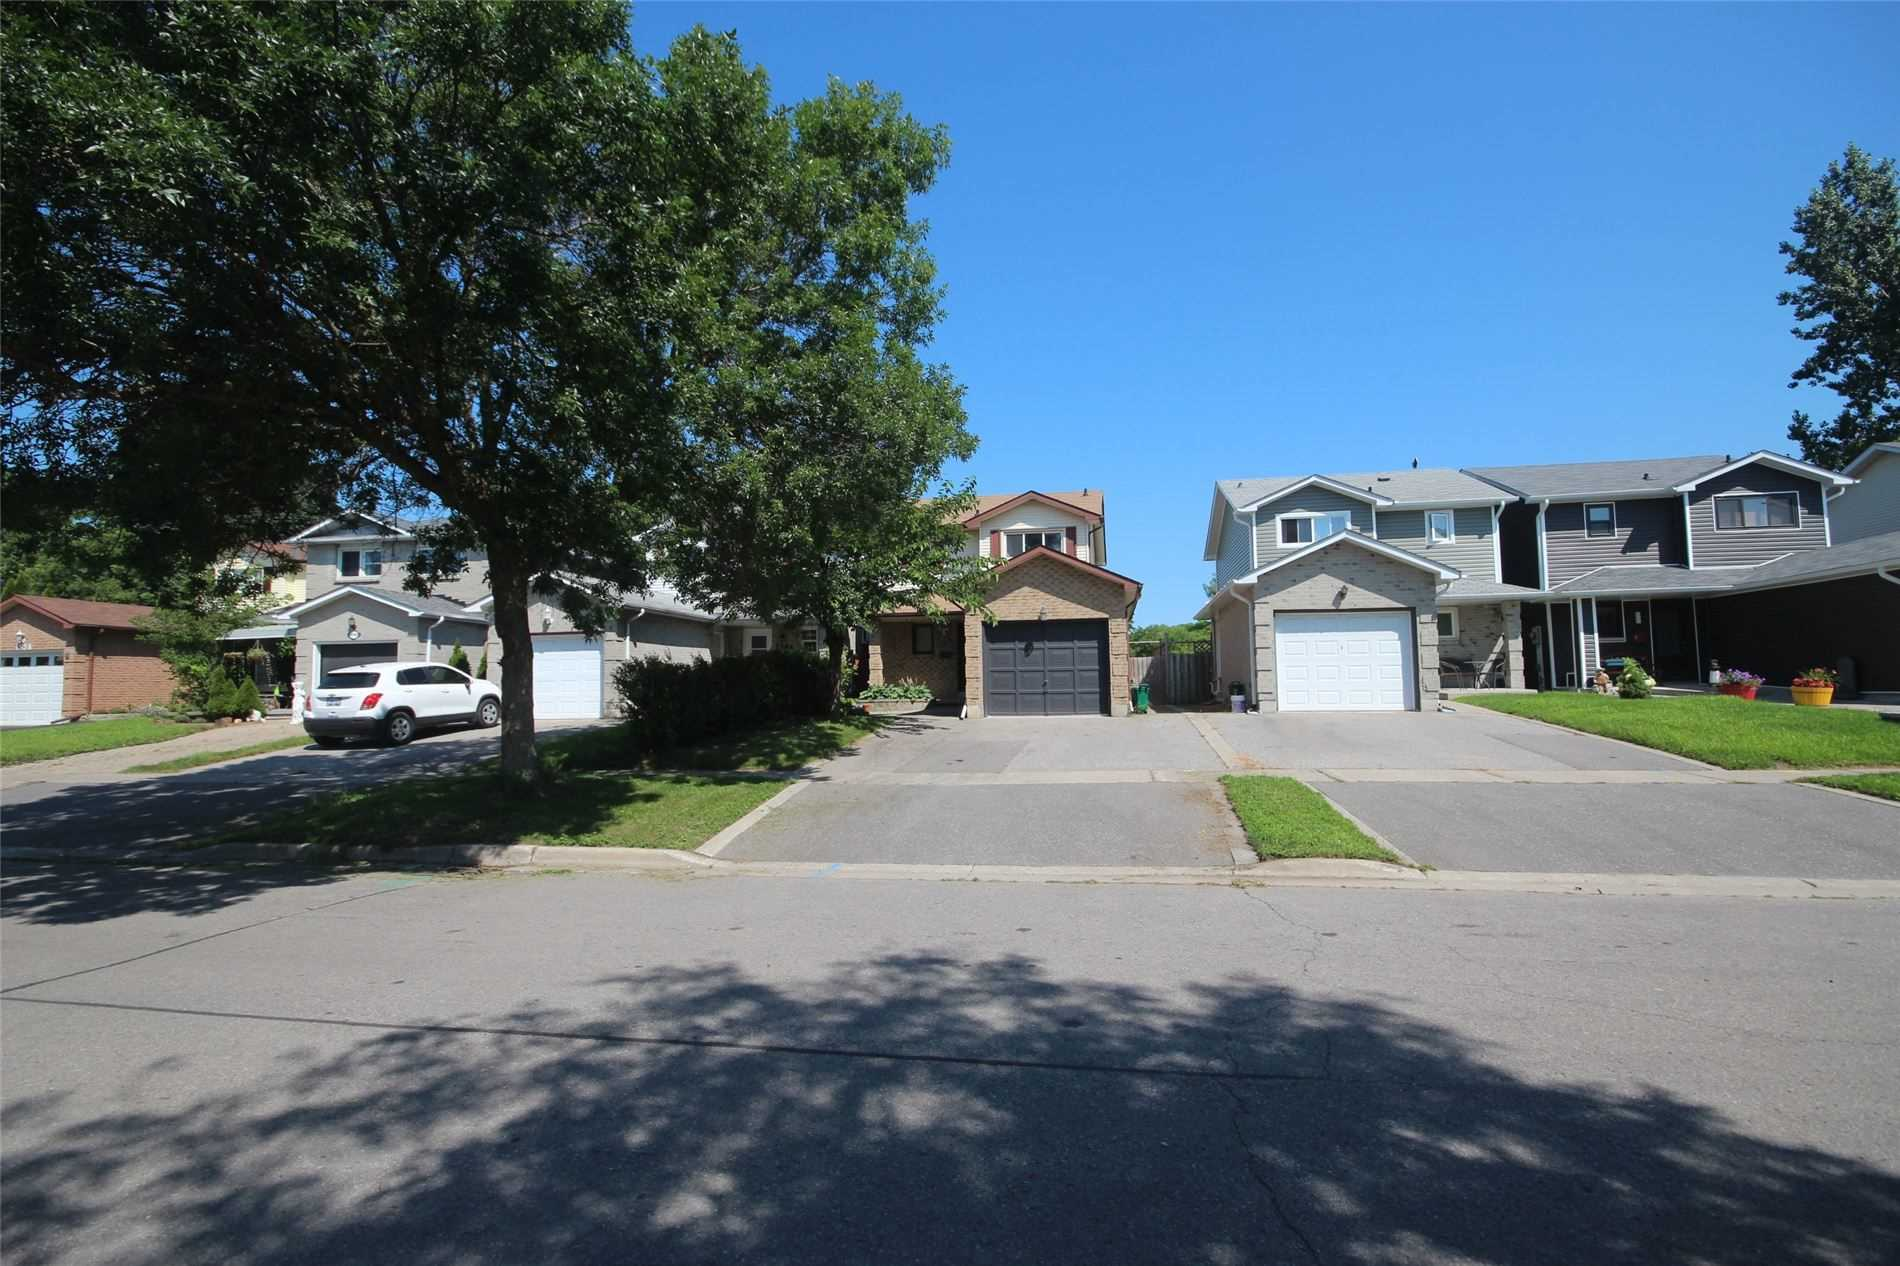 Detached house For Lease In Oshawa - 1546 Norwill Cres, Oshawa, Ontario, Canada L1G7T8 , 3 Bedrooms Bedrooms, ,3 BathroomsBathrooms,Detached,For Lease,Norwill